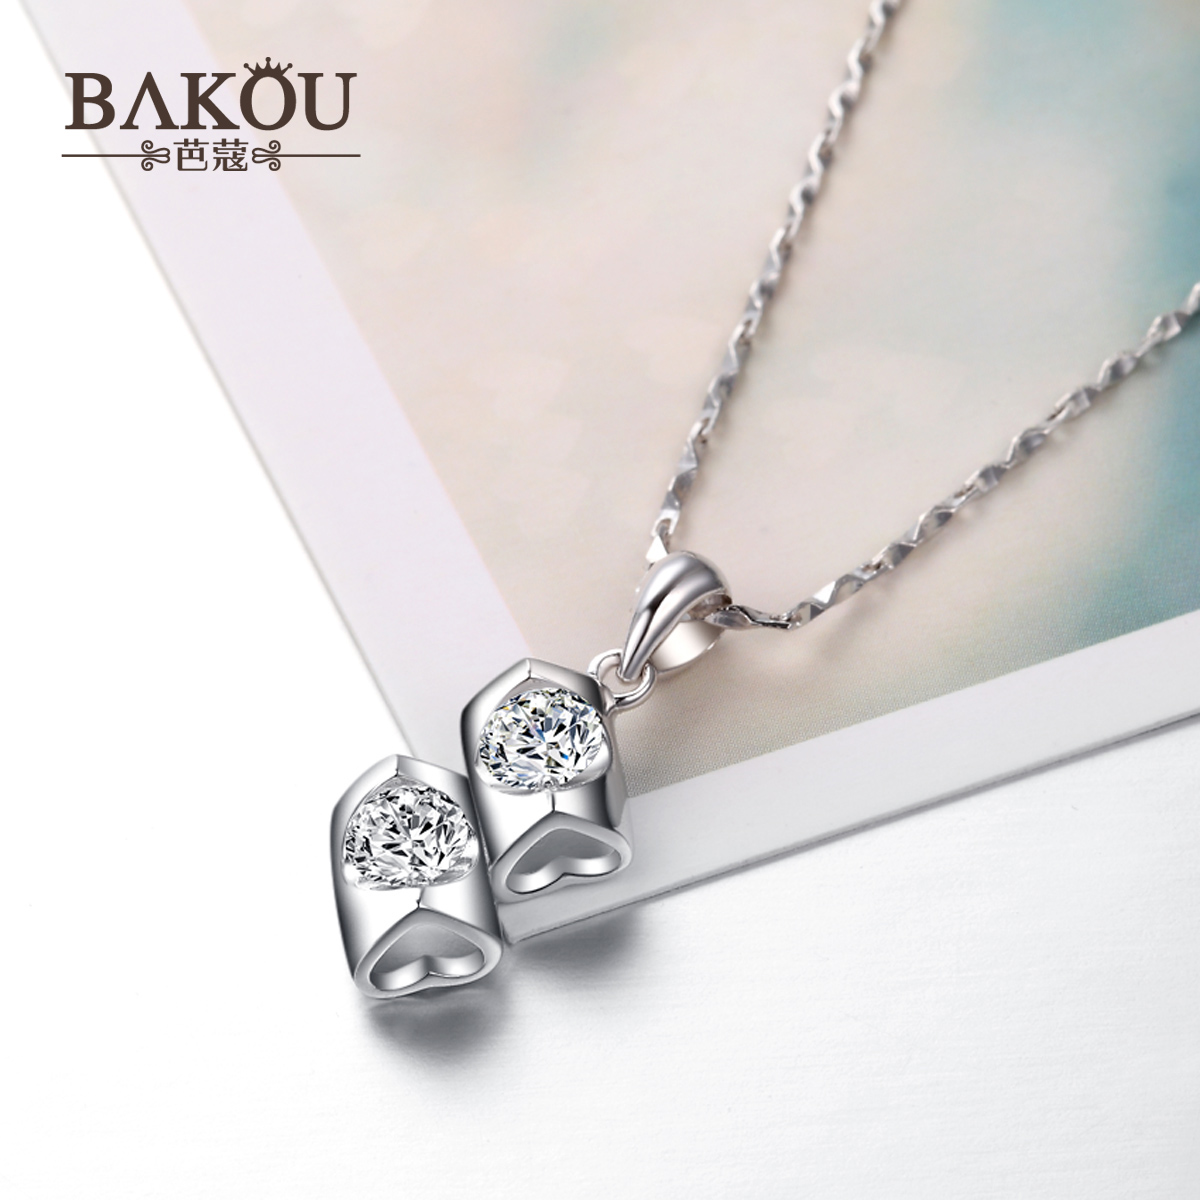 925 silver necklace female korean version of the clavicle pendant necklace female short clavicle chain necklace heart necklace girls day